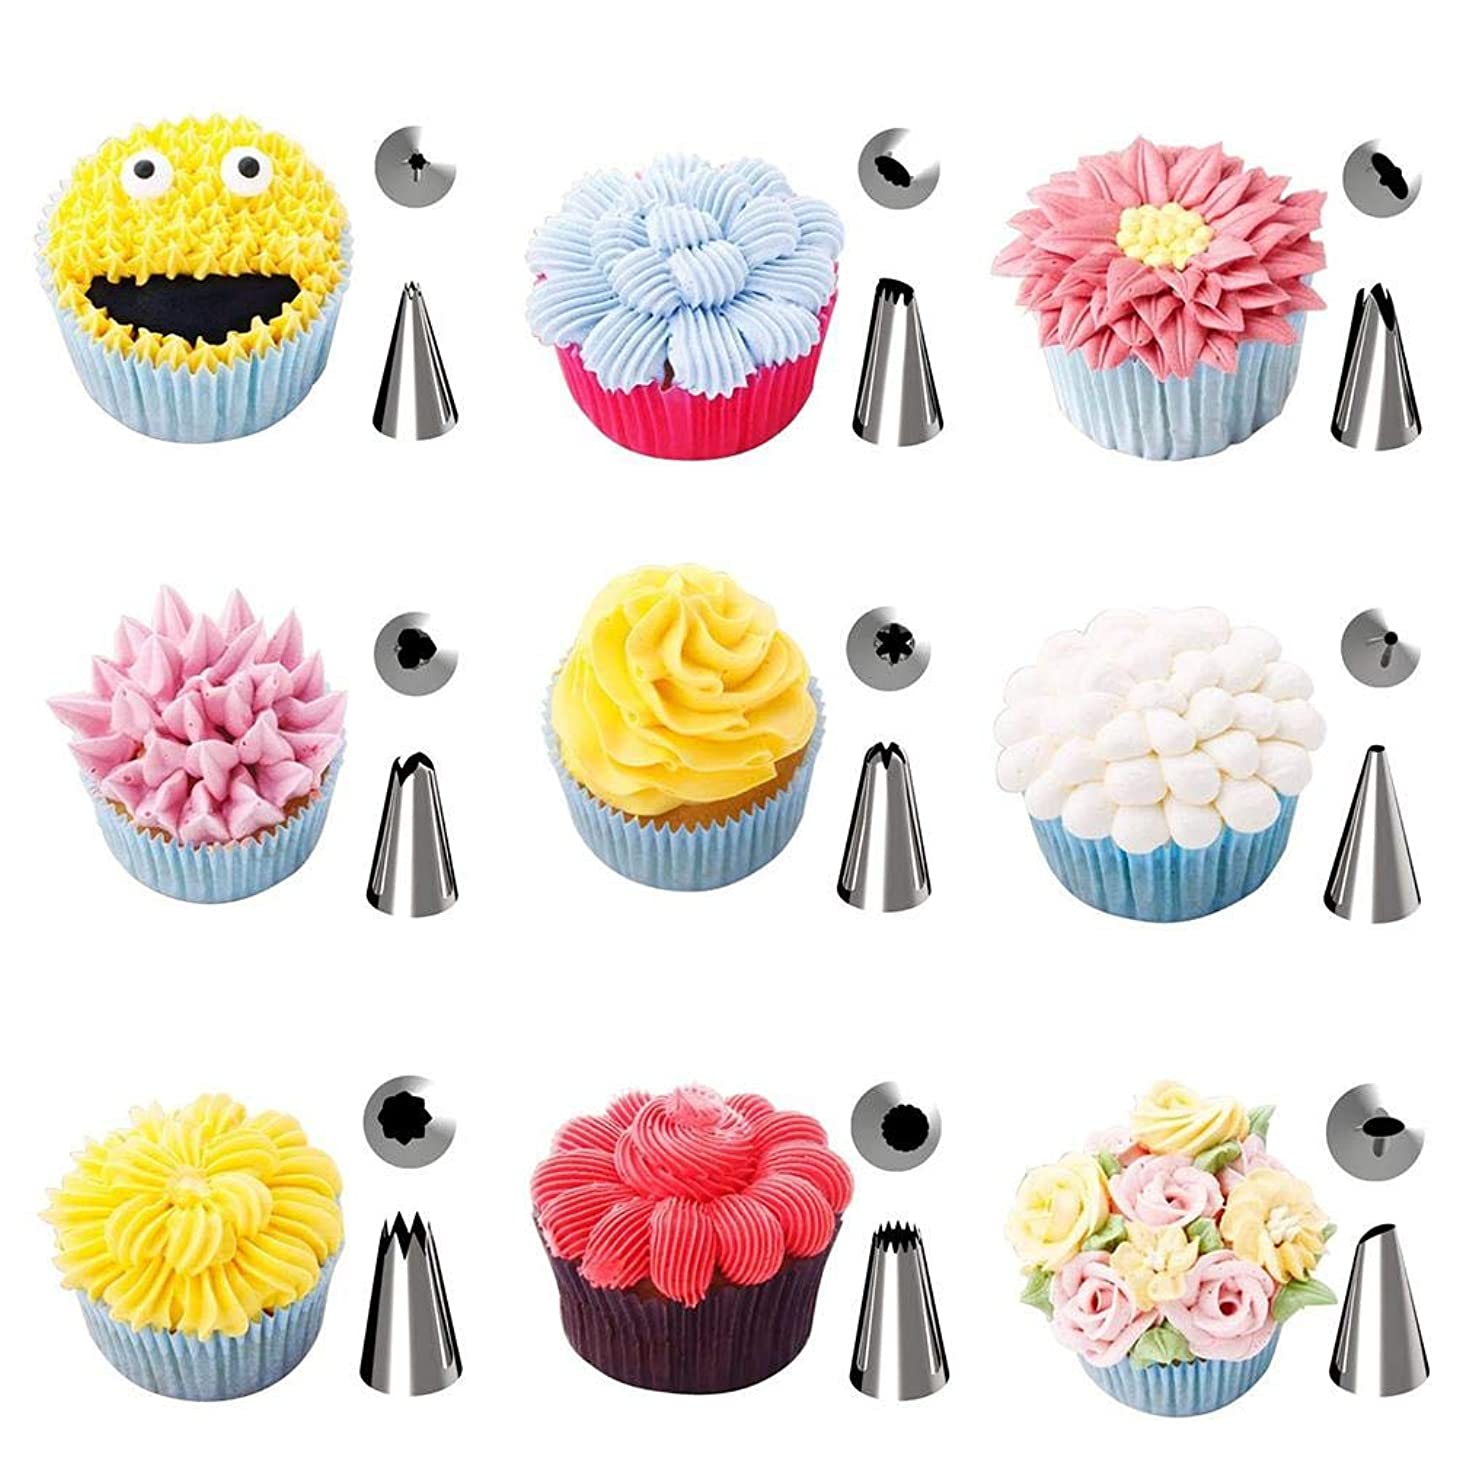 42-piece Cake DIY Tool Set With Decorating Mouth Squeezing Flower Bag Flower Nails Complete Combination Of Converters